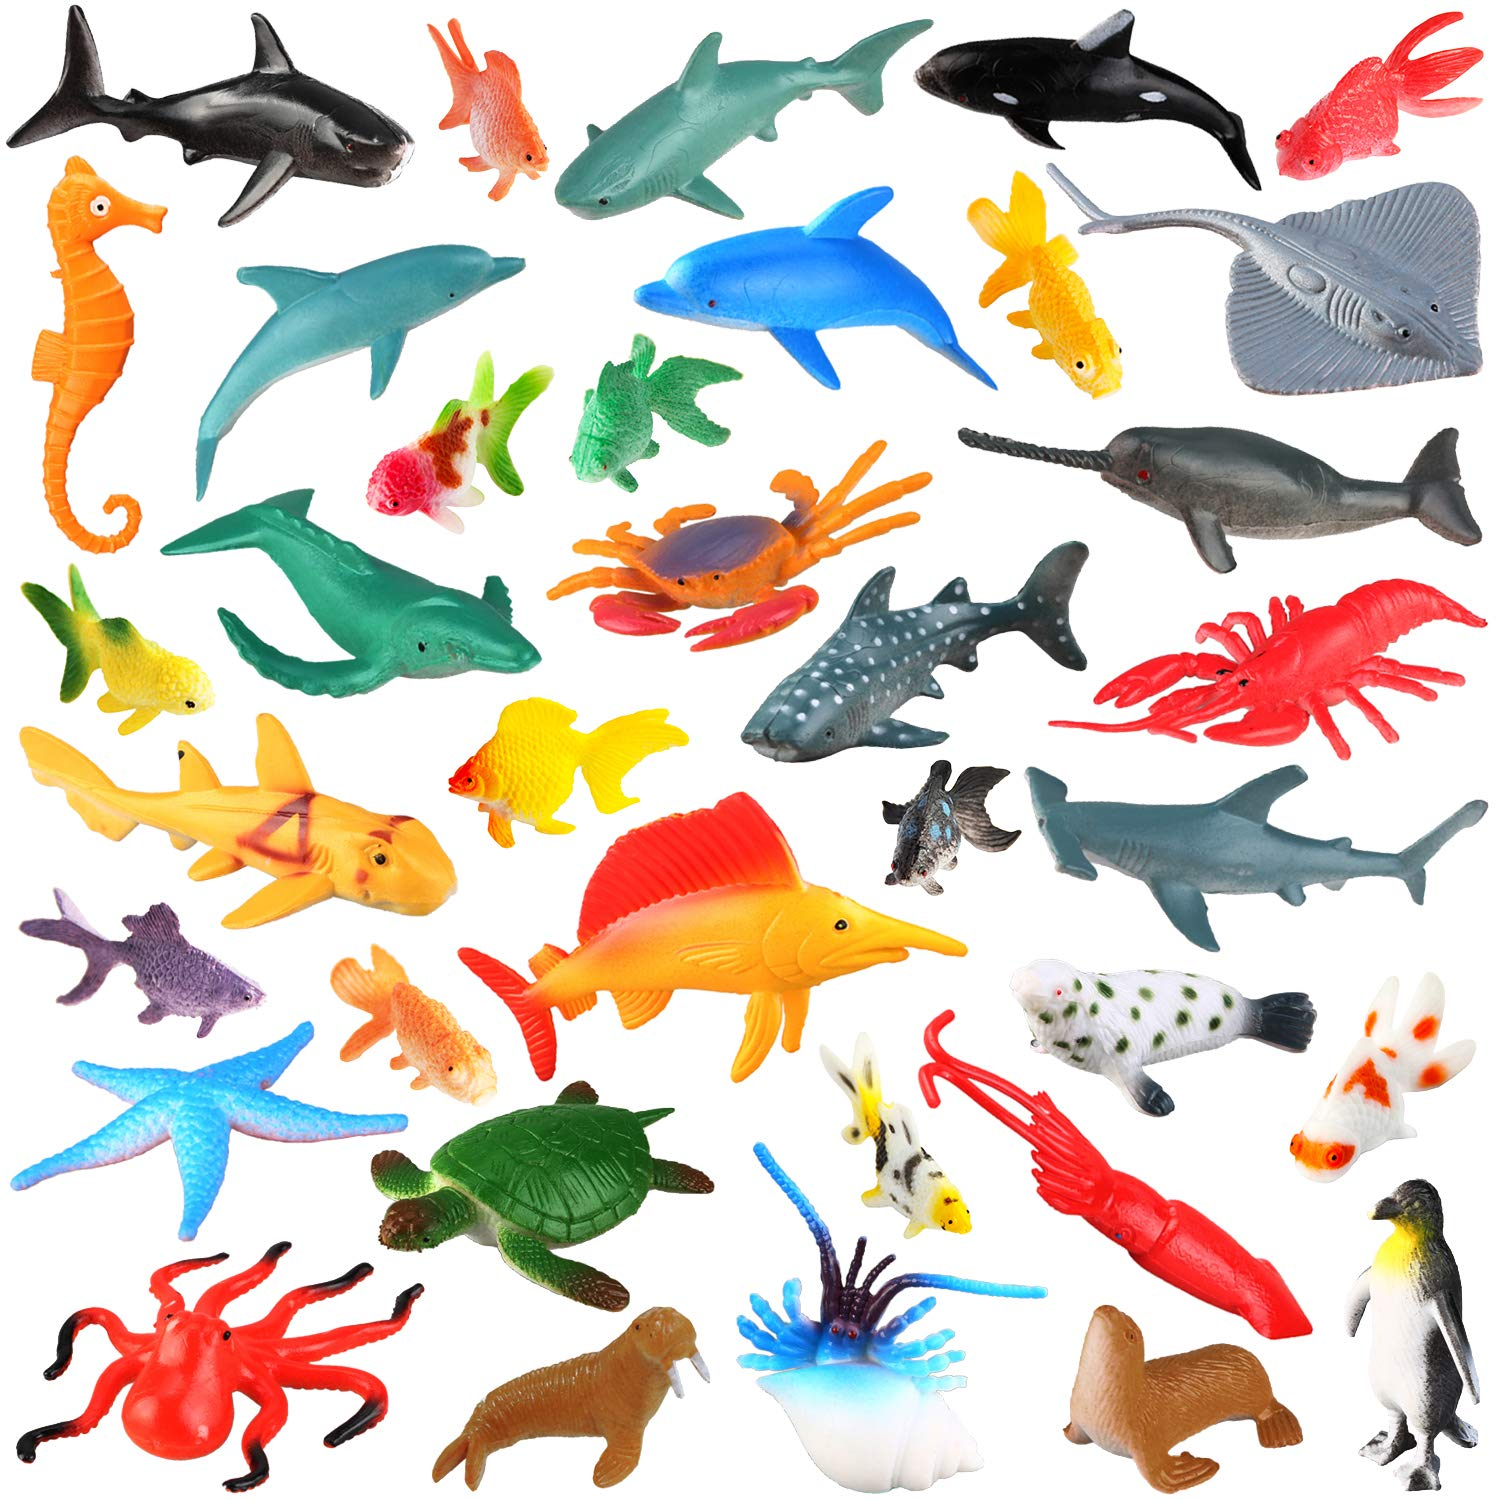 [36 Pack] Ocean Sea Animals Bath Toys for Party Favor Supplies - 2-4 inch Rubber Ocean Creatures Figures with Marine Octopus Shark Fish Sea Life for Child Education, Party Bag Filler, Birthday Gift